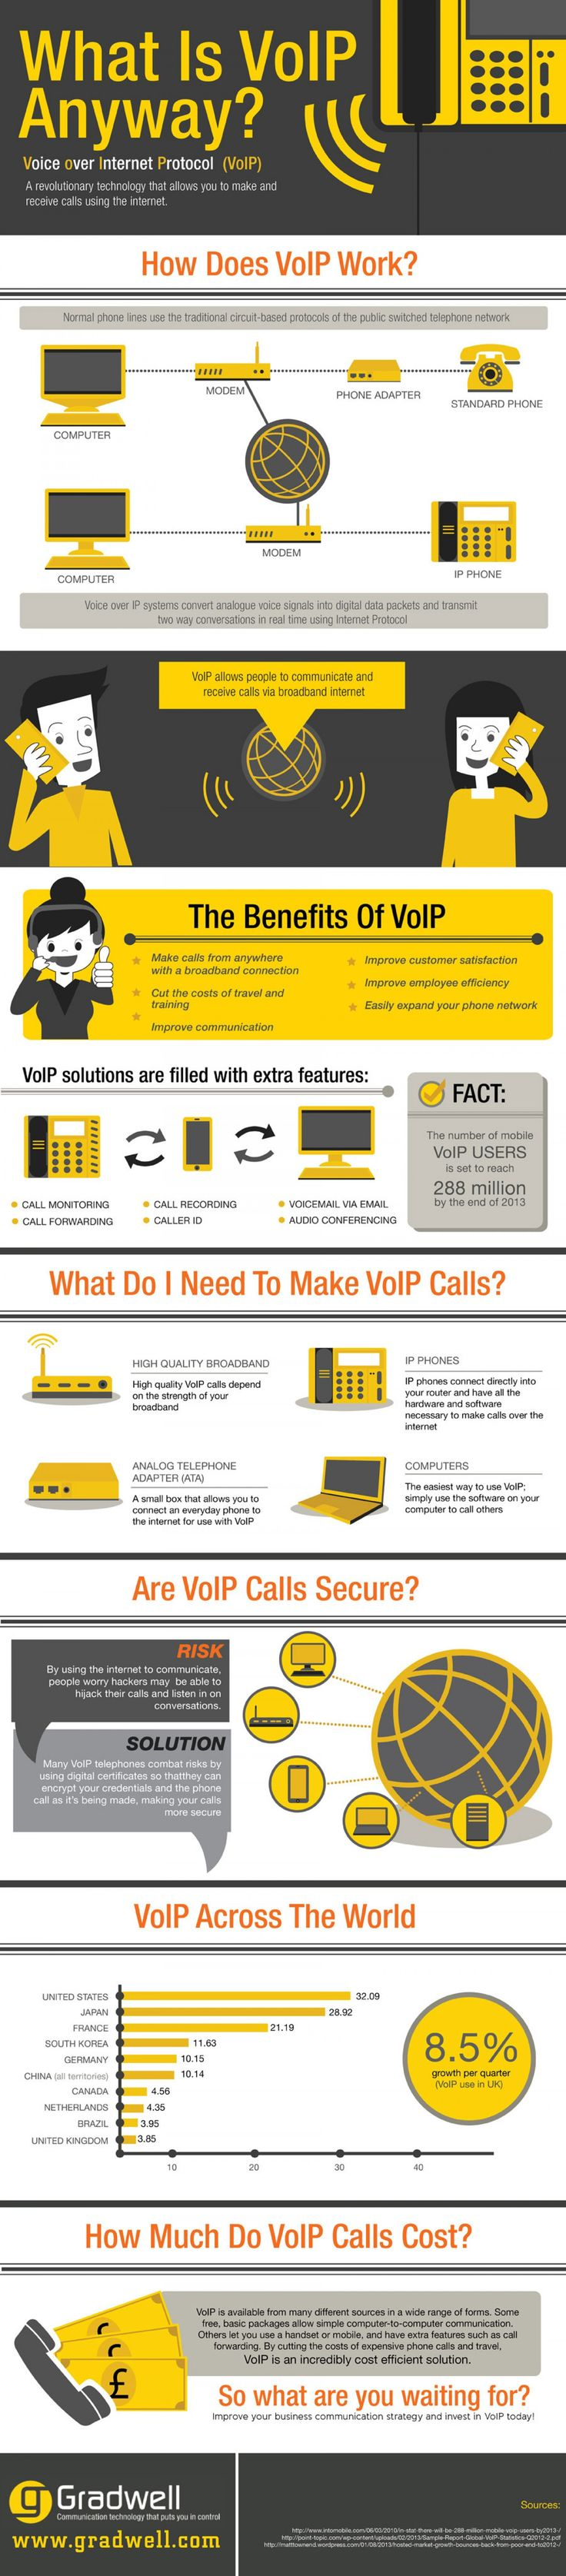 8 best phone images on pinterest phone business and cloud based what is voip anyway infographic fandeluxe